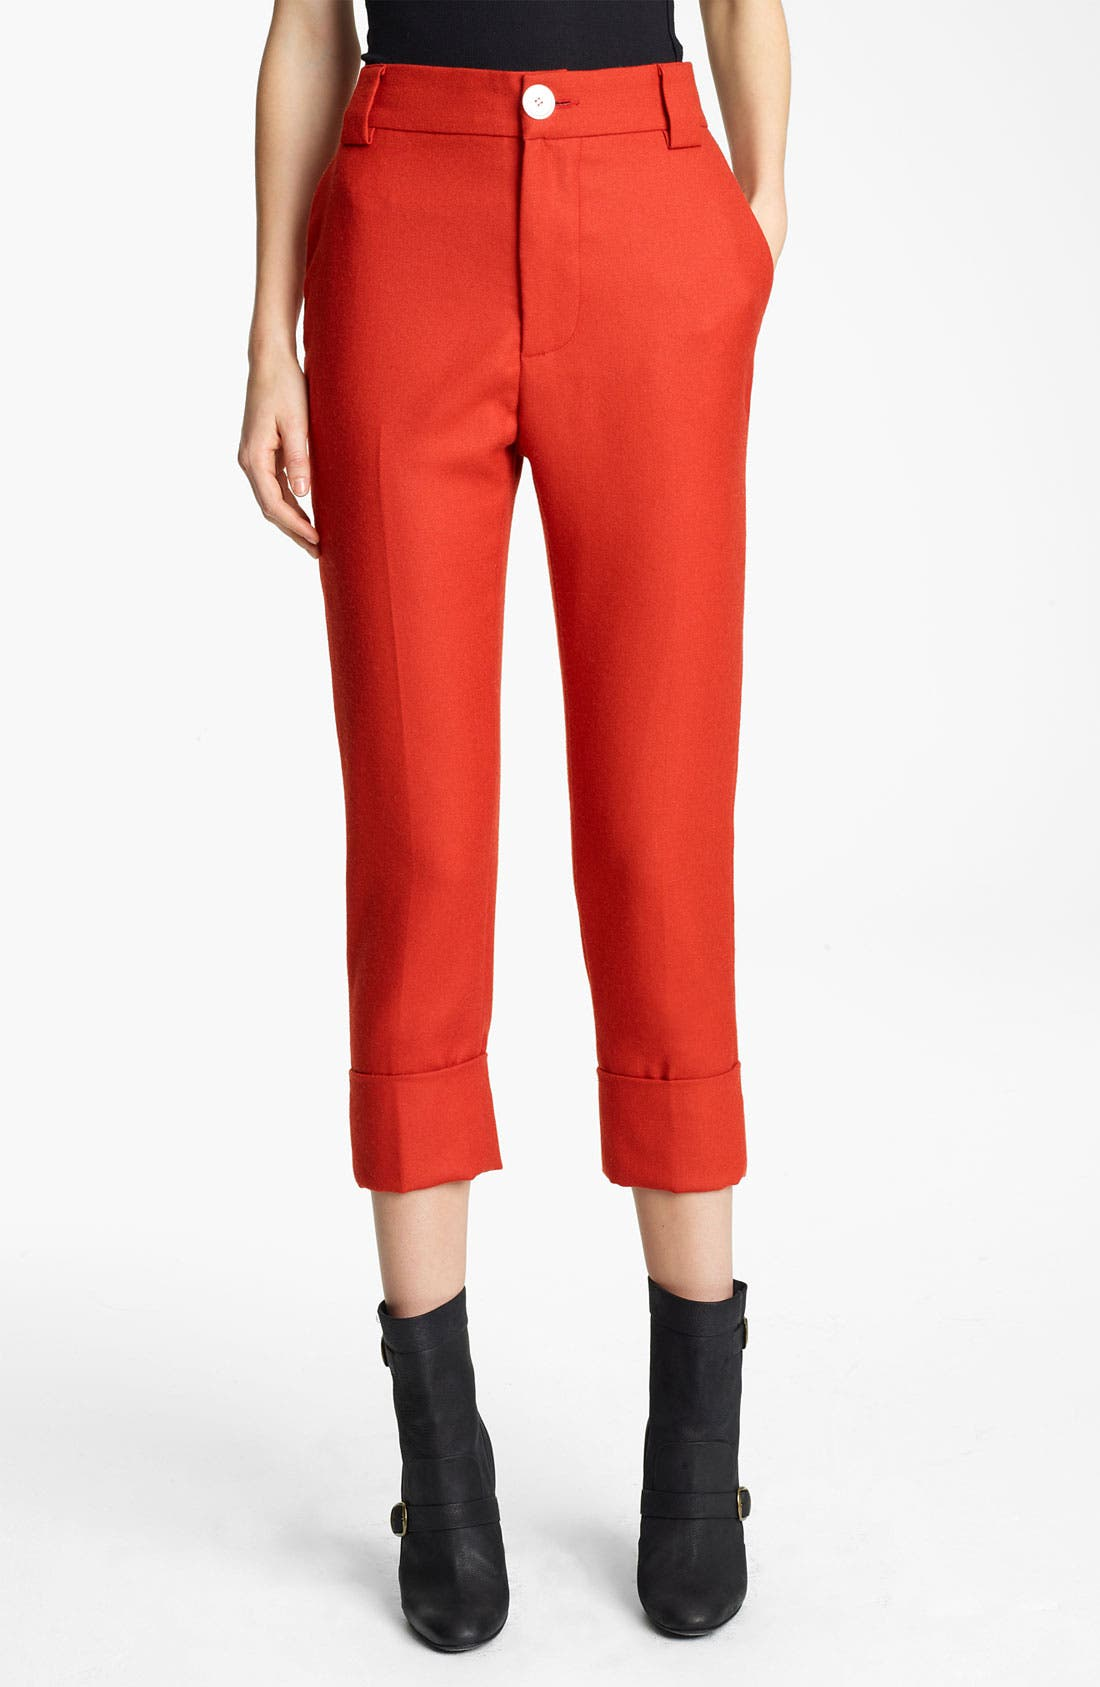 Alternate Image 1 Selected - Band of Outsiders Crop Straight Leg Flannel Pants